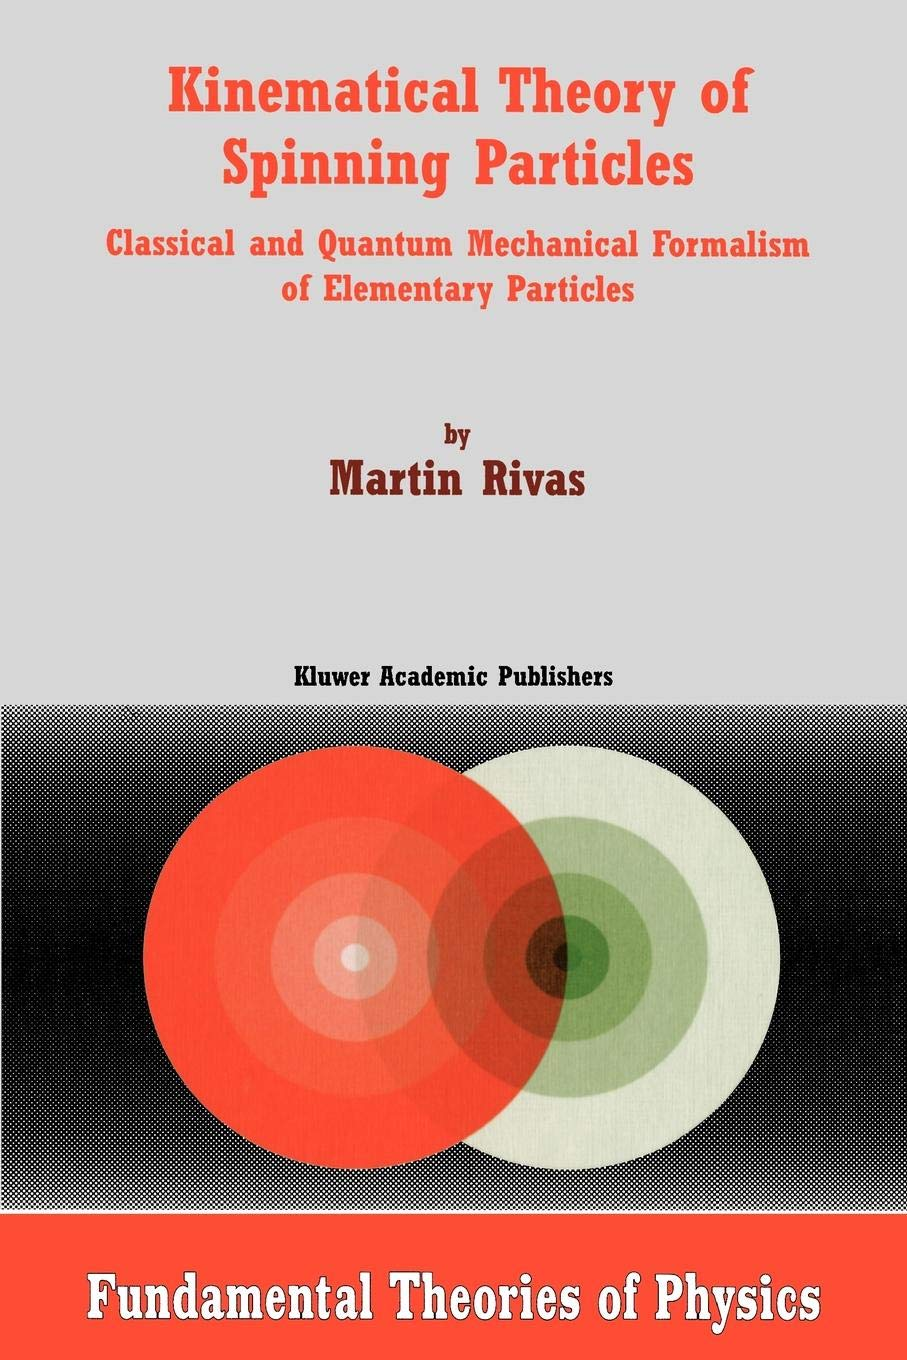 Kinematical Theory of Spinning Particles: Classical and Quantum Mechanical Formalism of Elementary Particles Fundamental Theories of Physics: Amazon.es: Rivas, M.: Libros en idiomas extranjeros